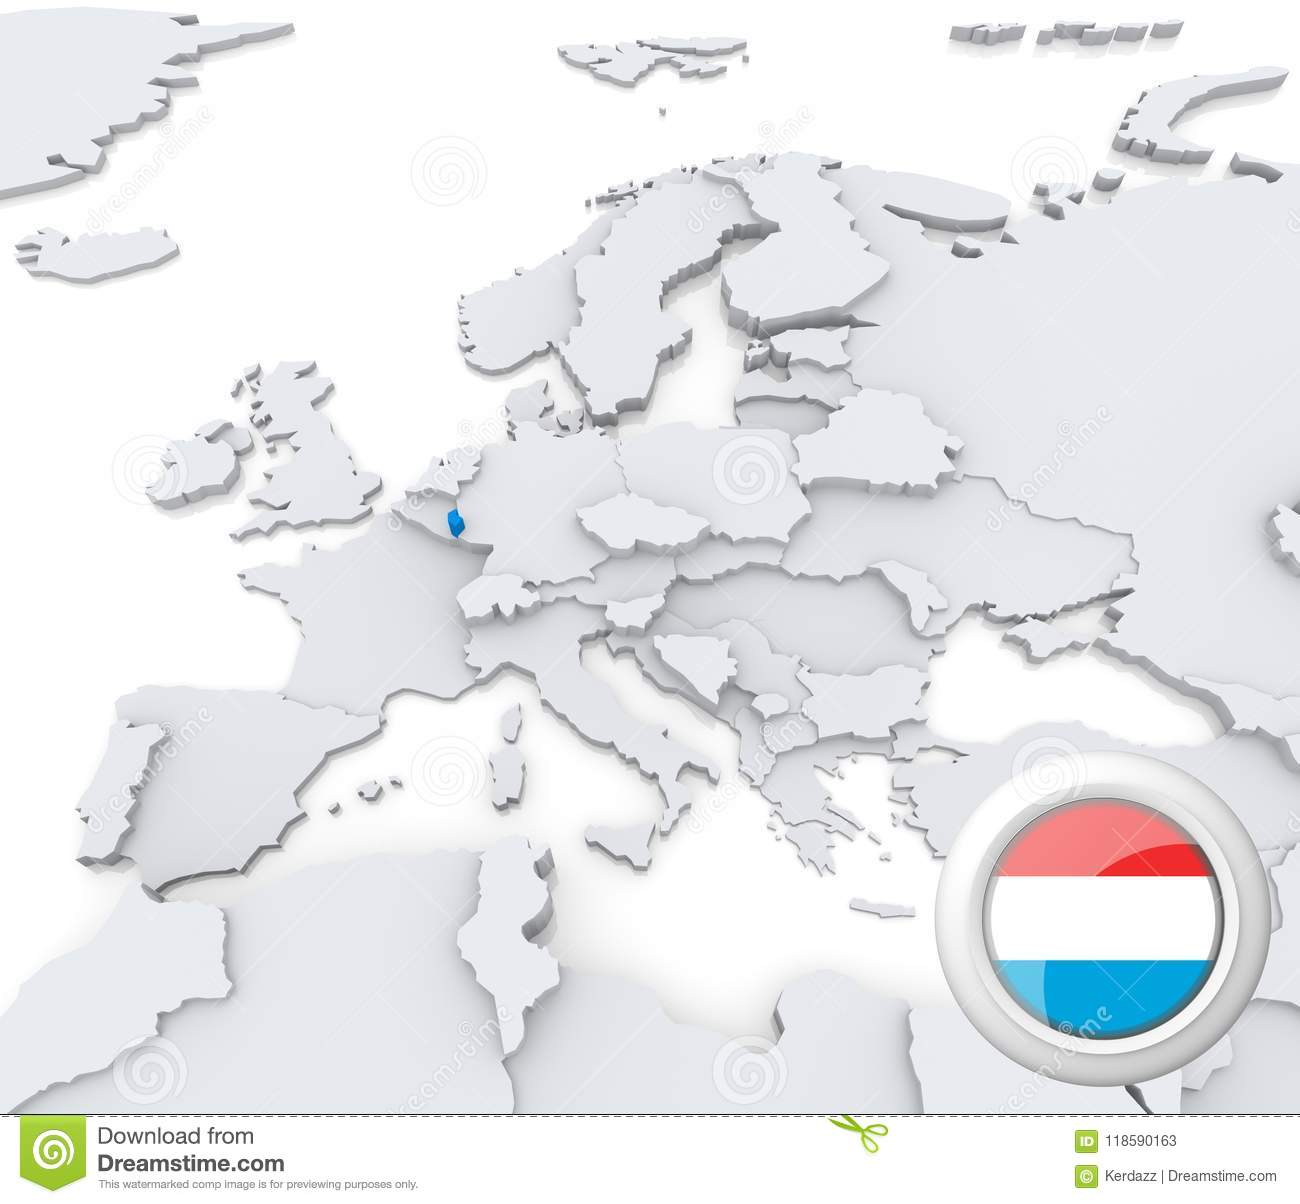 Map Of Europe Luxemburg.Luxembourg On Map Of Europe Stock Illustration Illustration Of